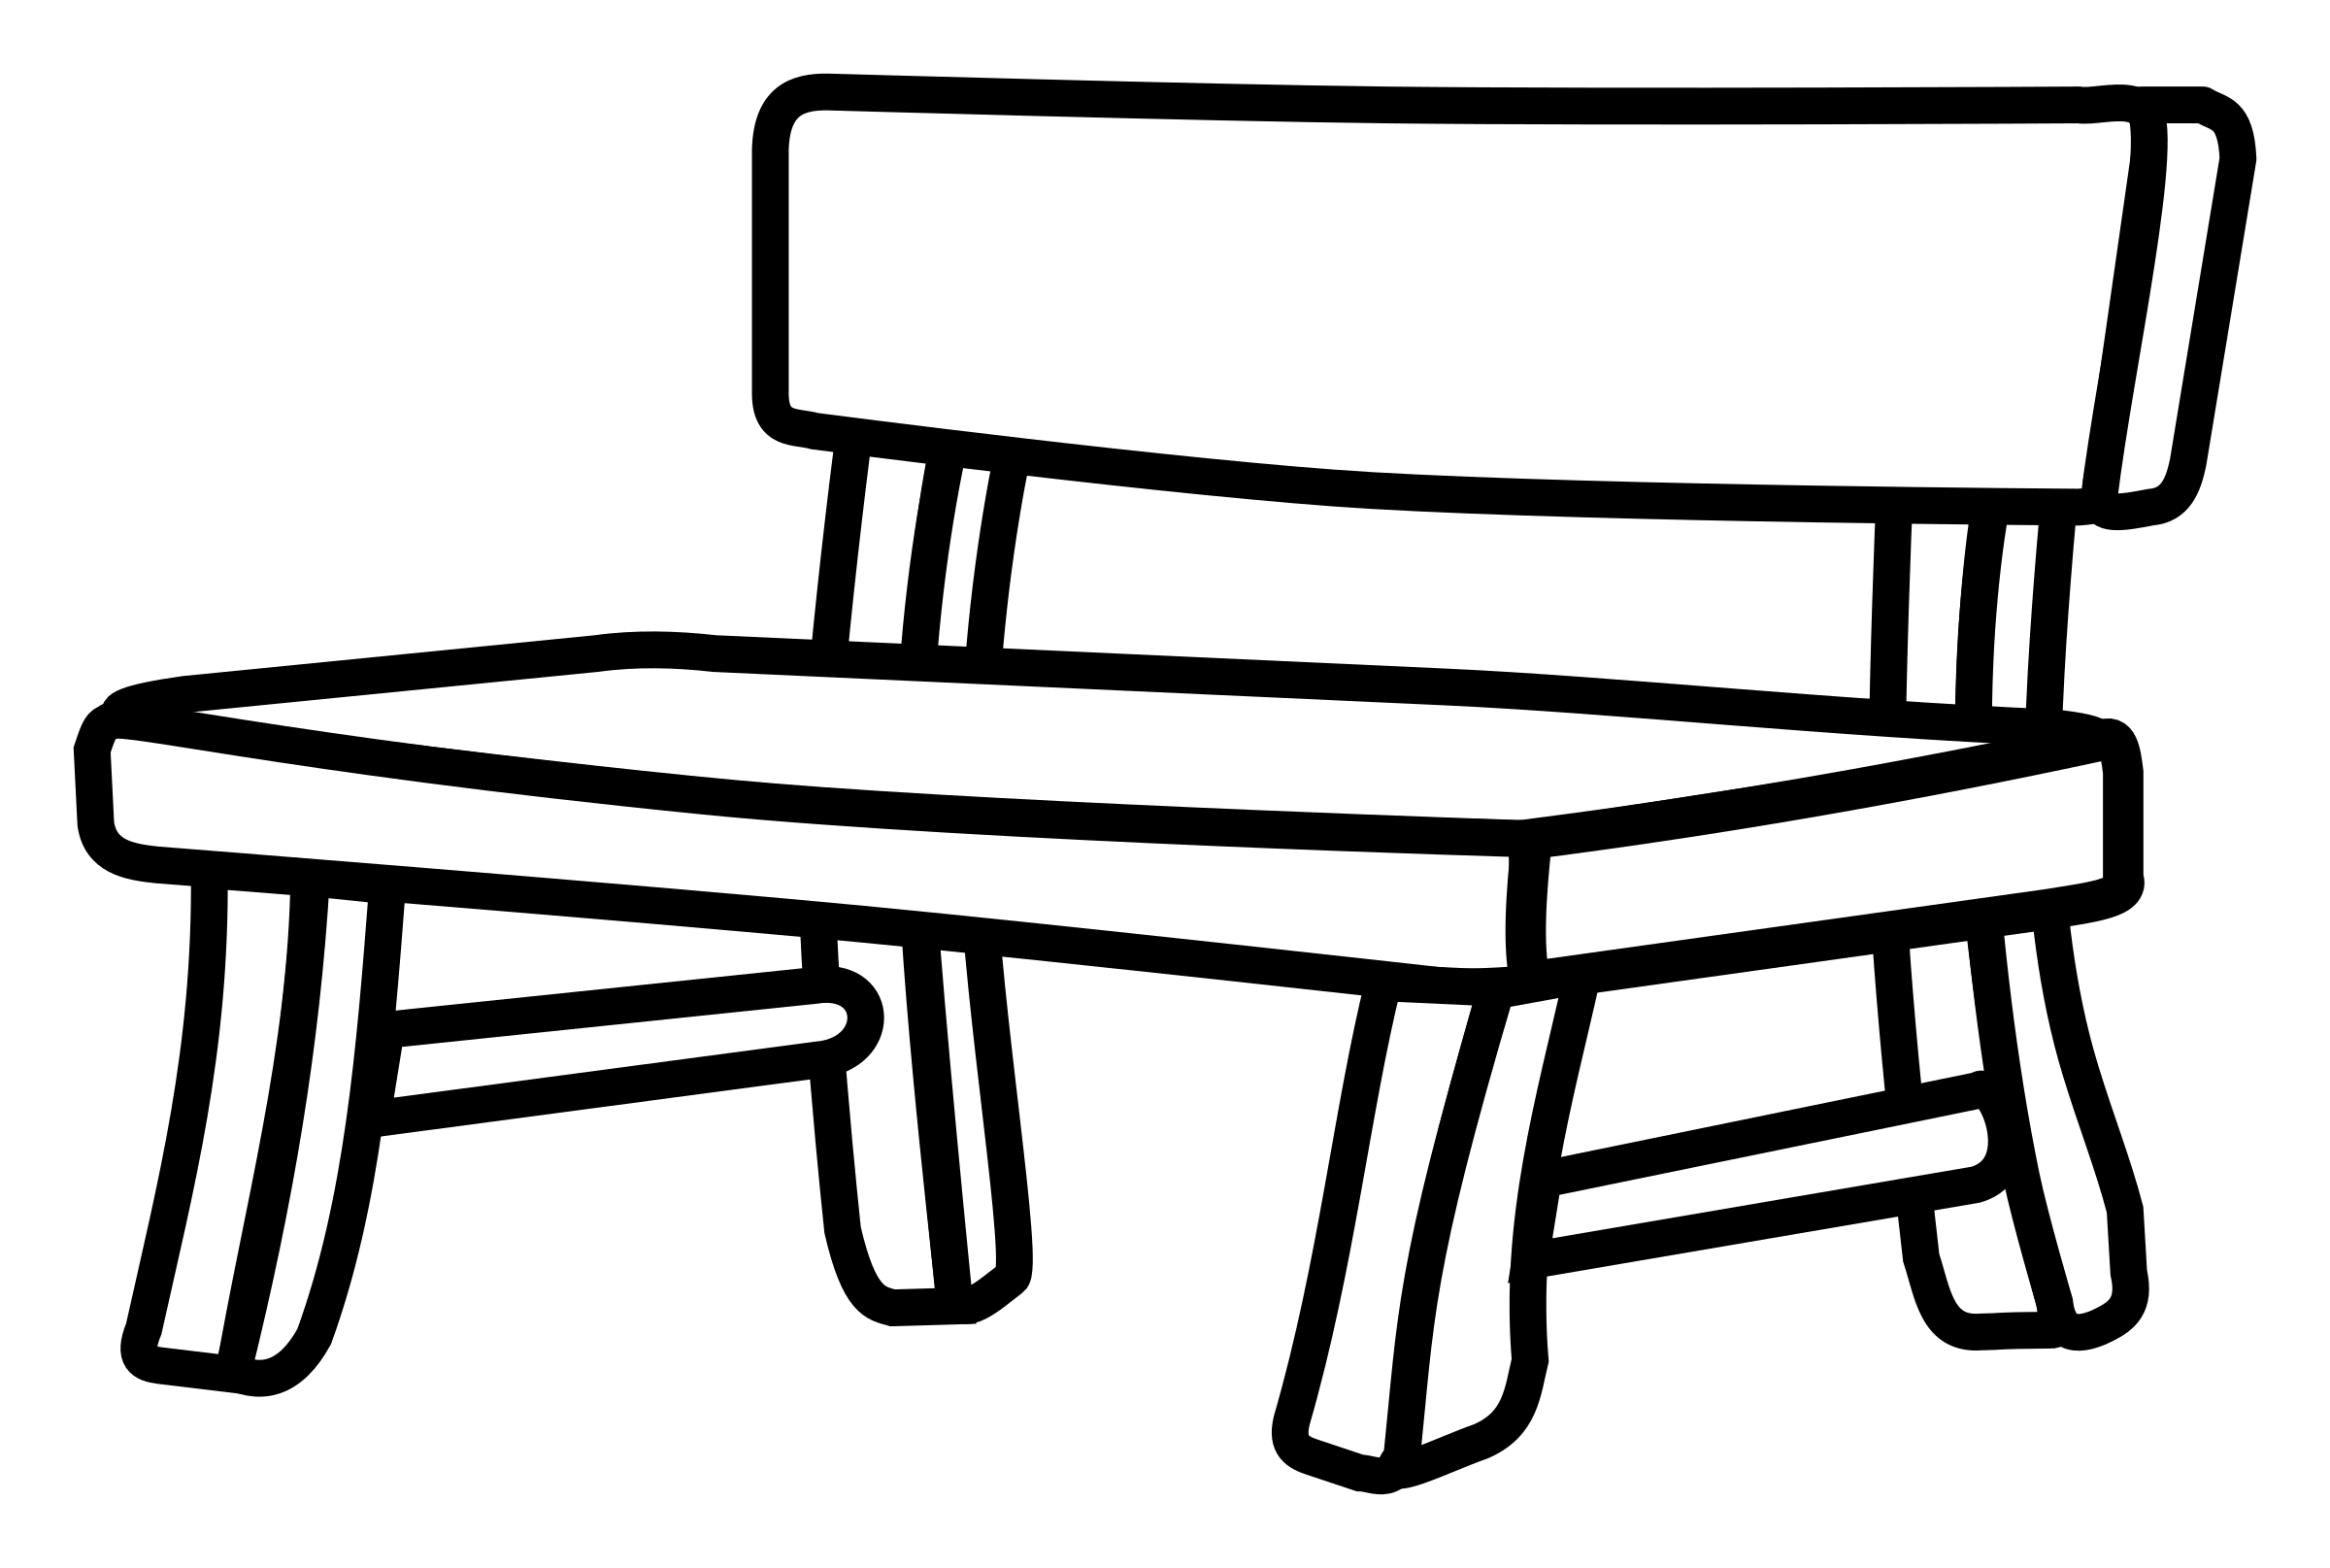 2400x1615 Furniture Clipart School Bench